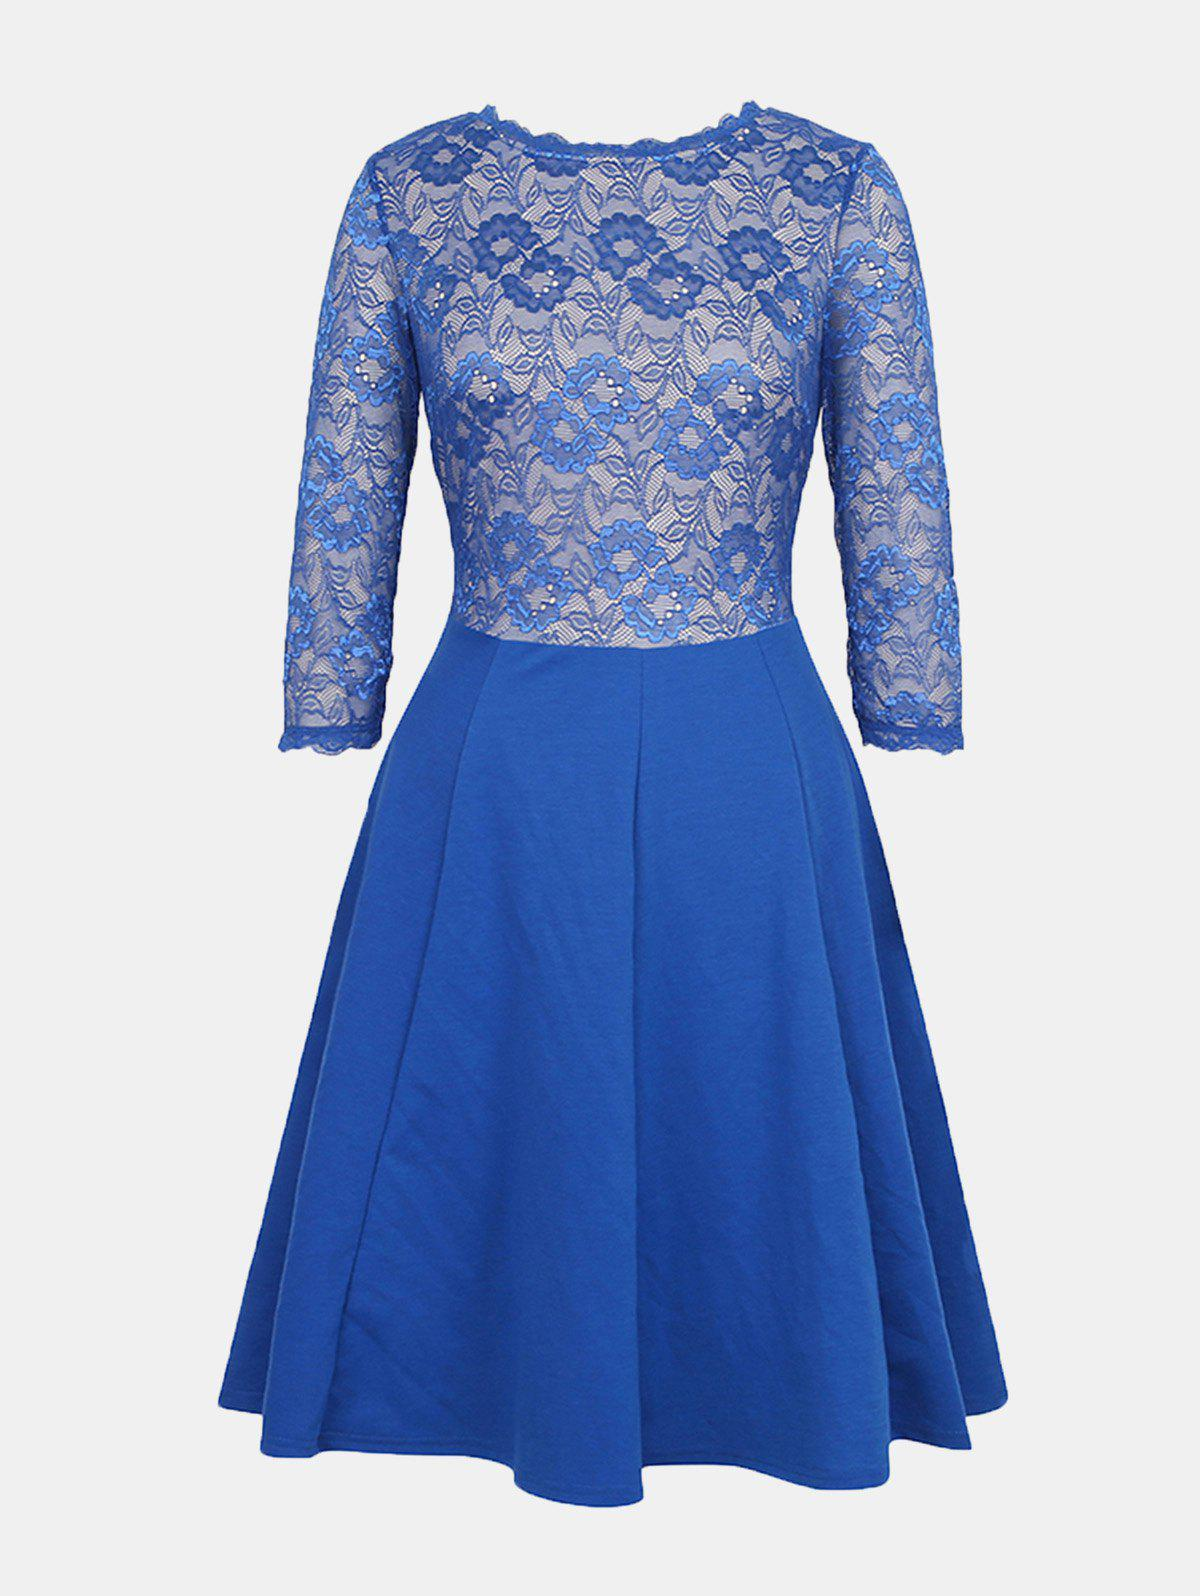 Fashion Lace Patchwork Round Collar 7 Point Sleeve A-line Dress